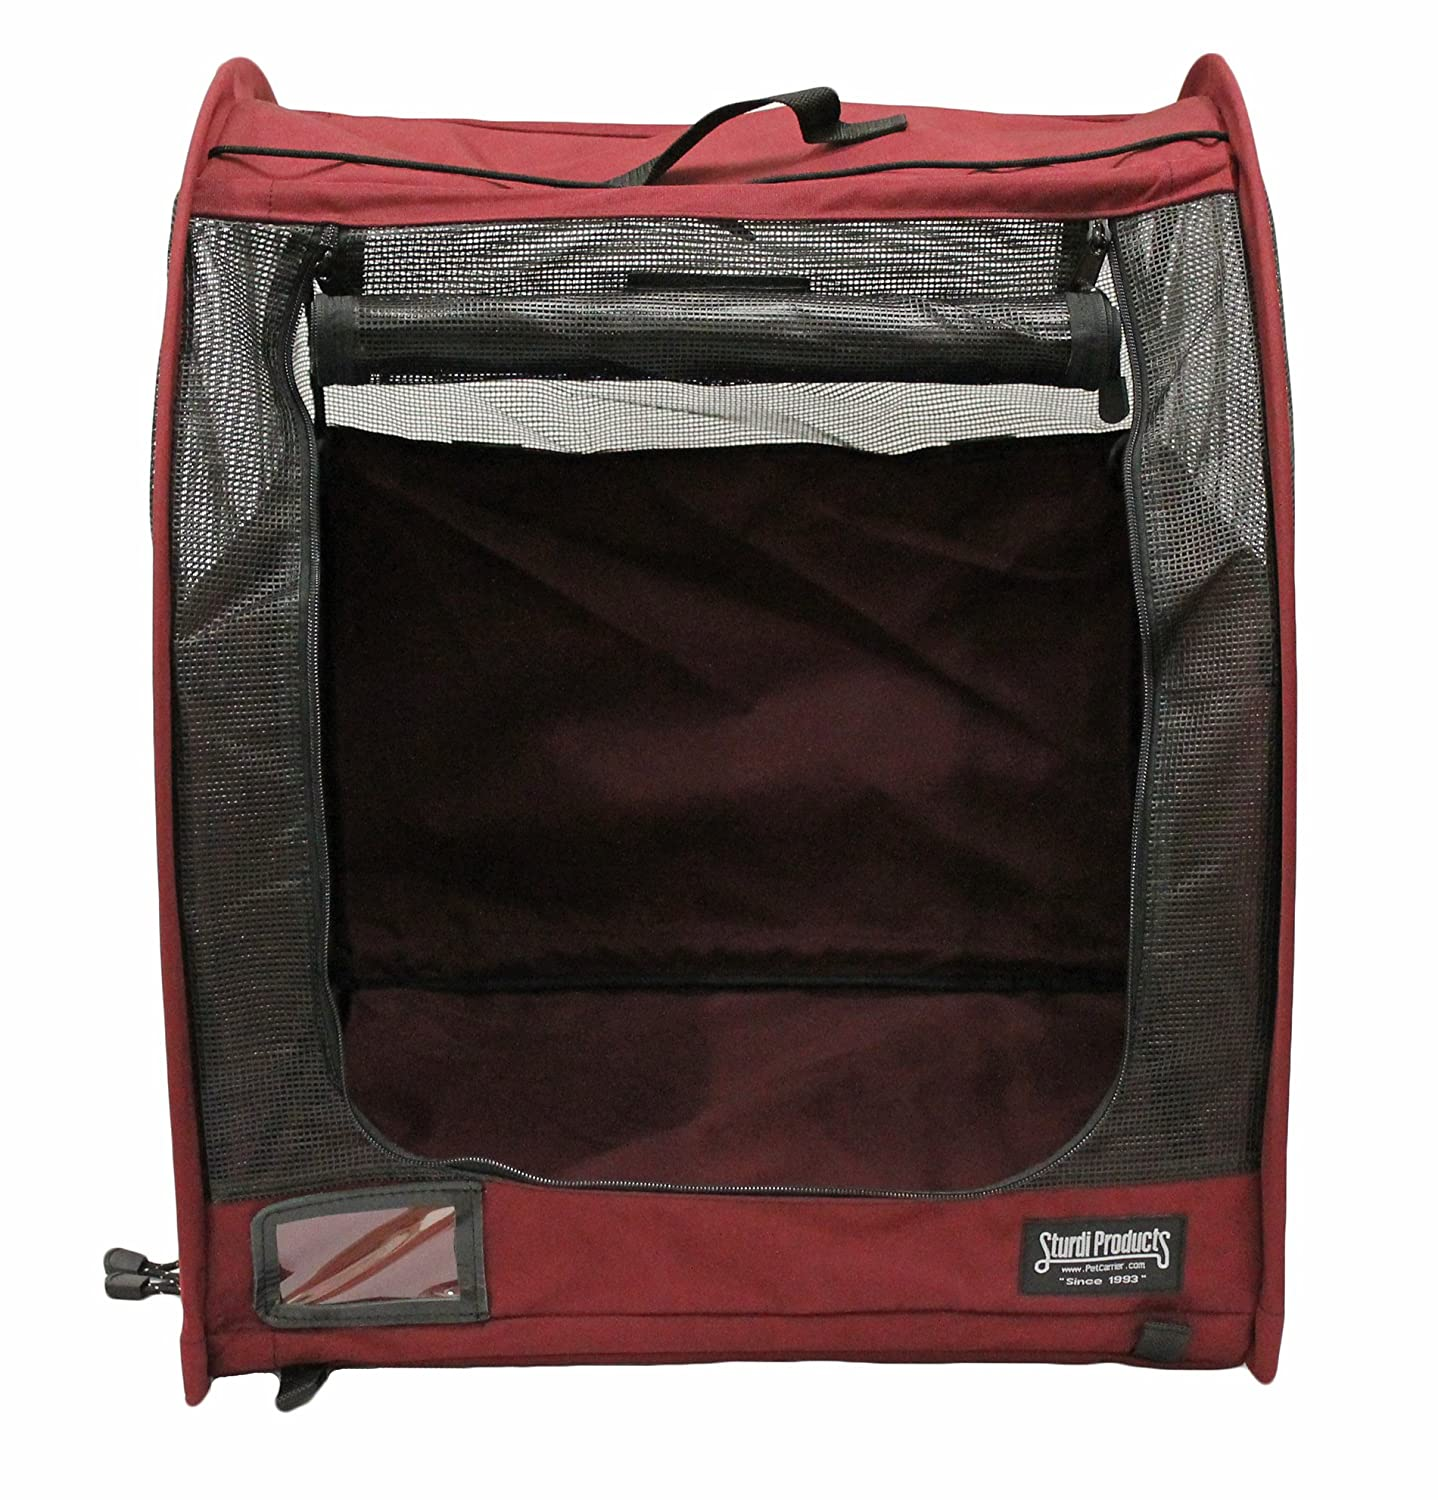 STURDI PRODUCTS Car-Go Single Pop-Up Pet Shelter